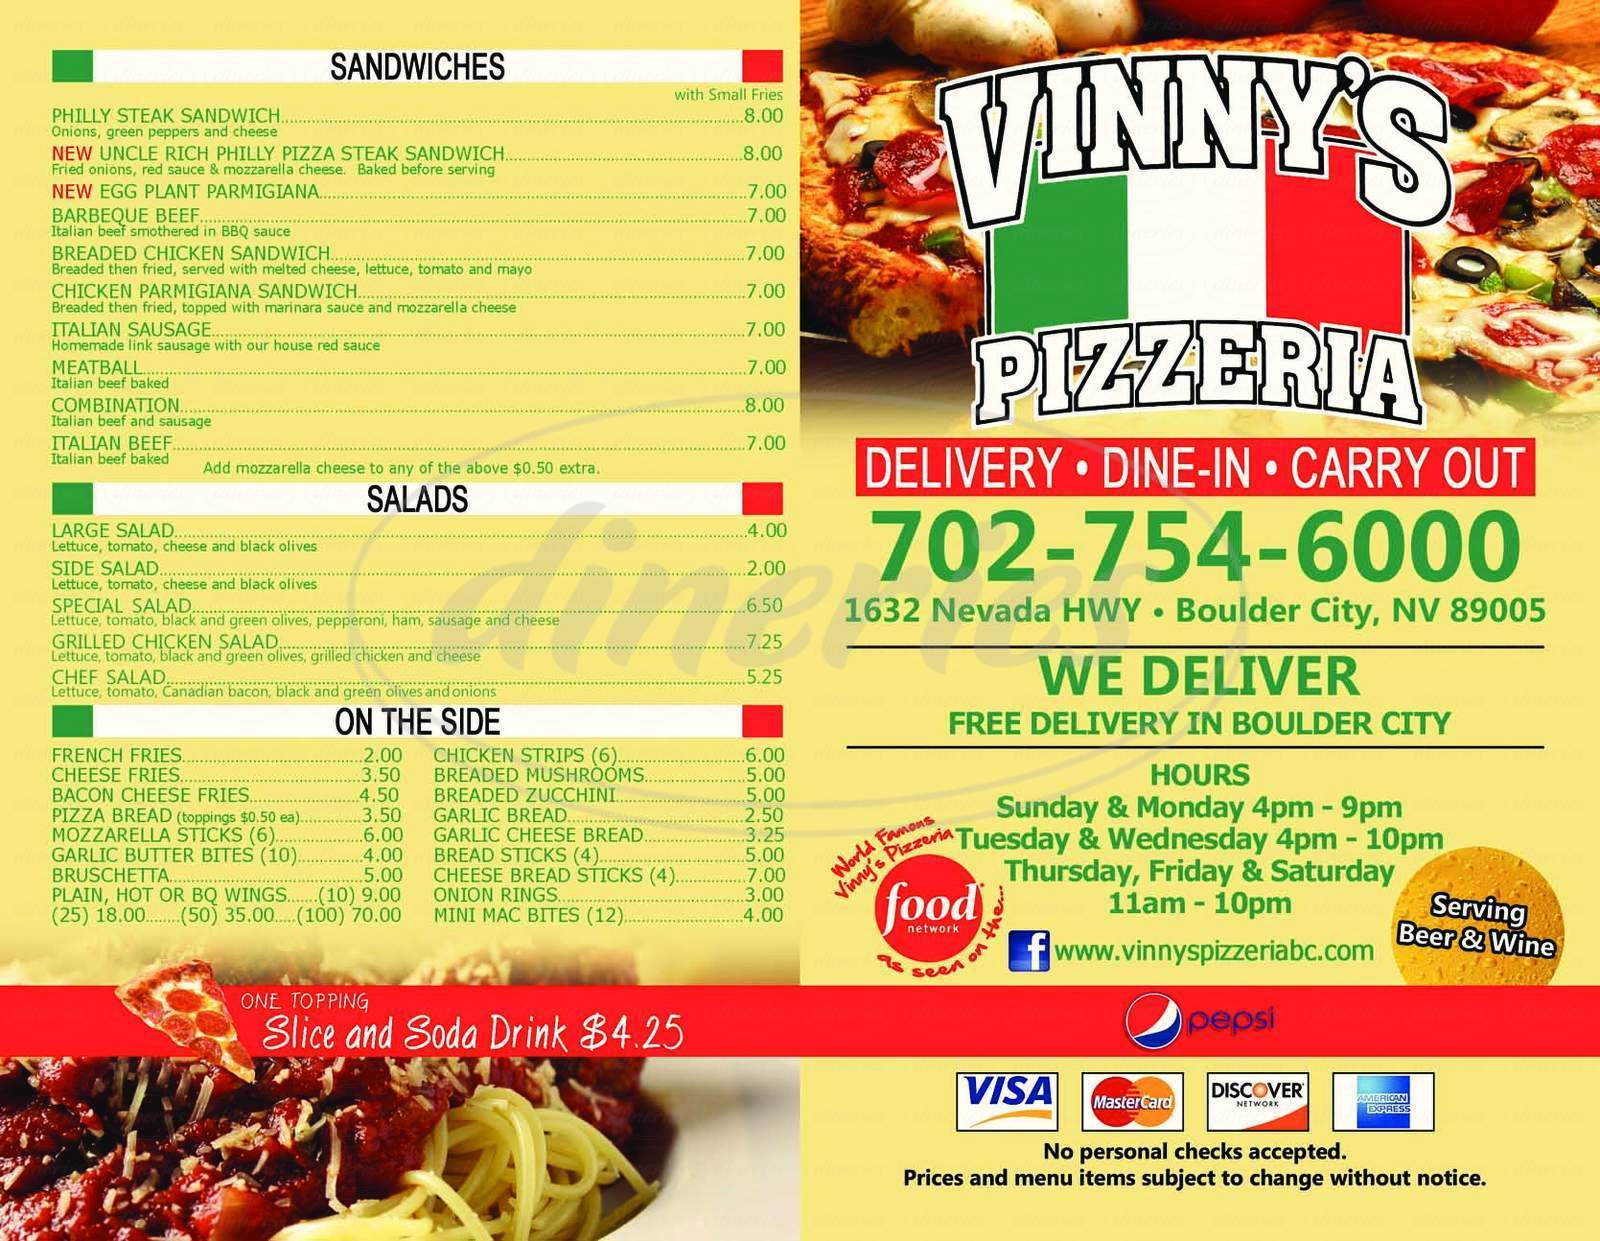 menu for Vinny's Pizzeria